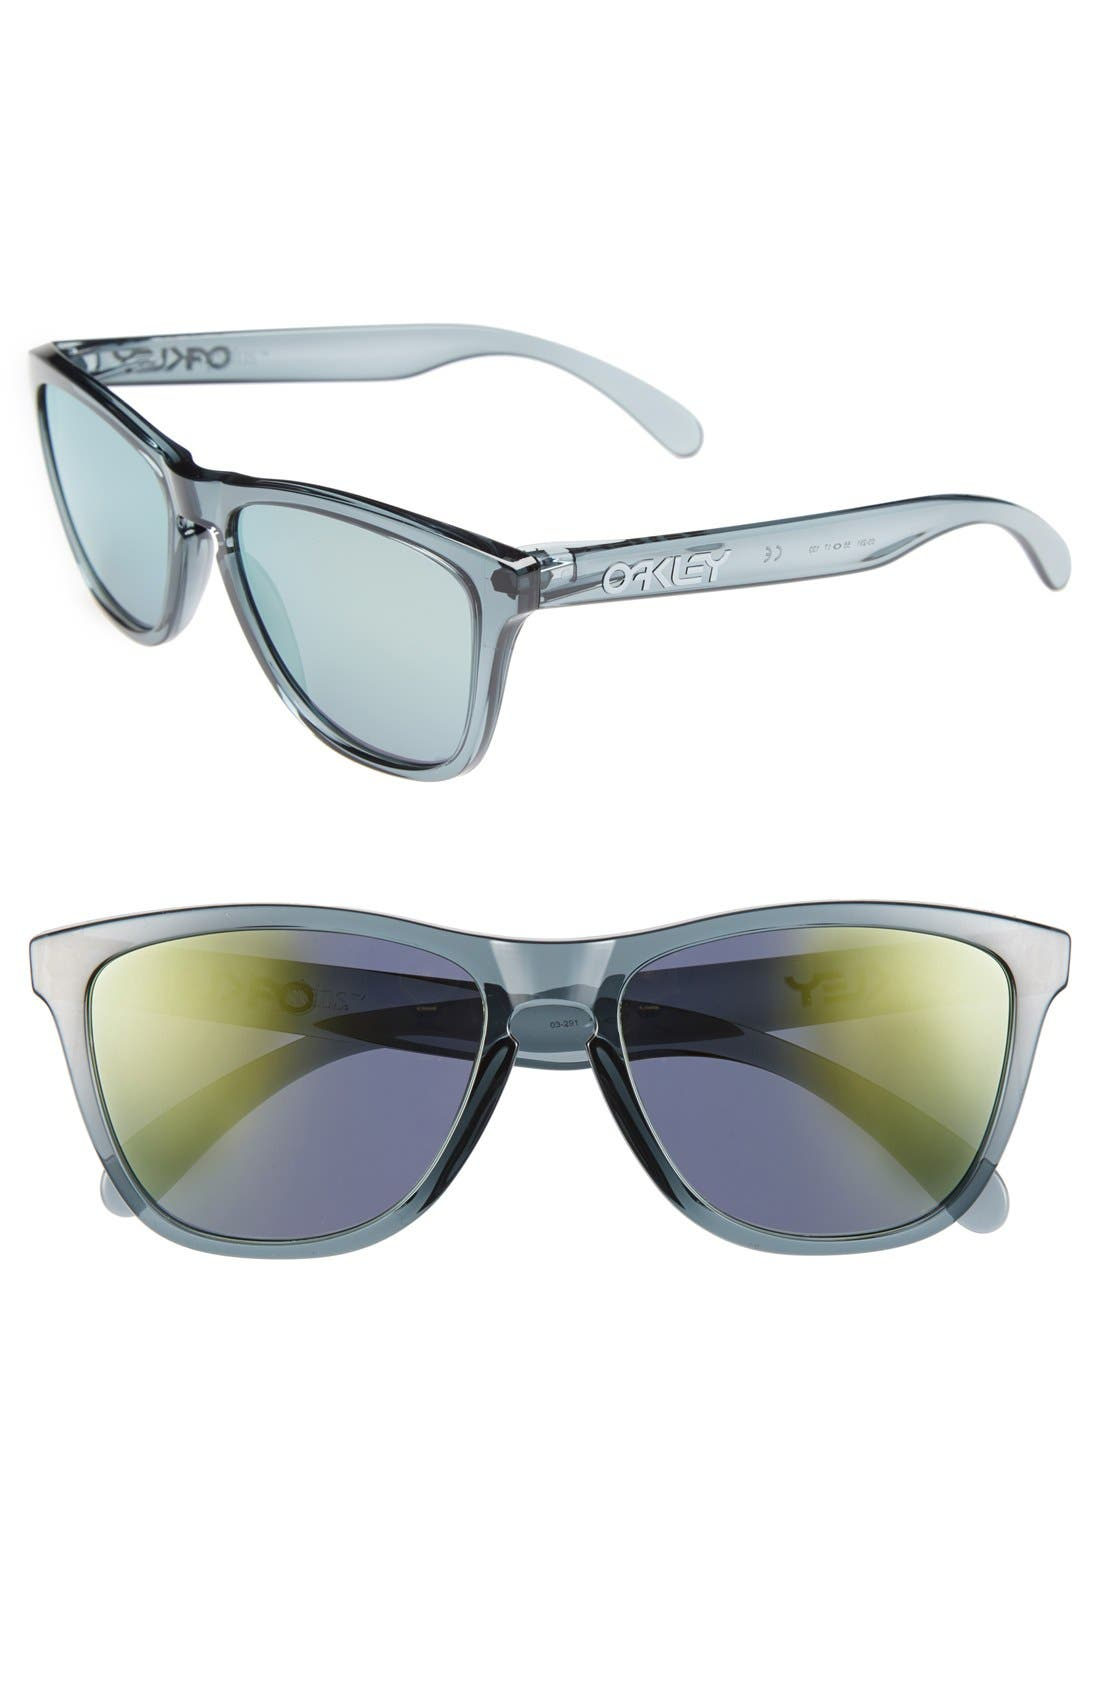 Main Image - Oakley 'Frogskins™' 55mm Sunglasses